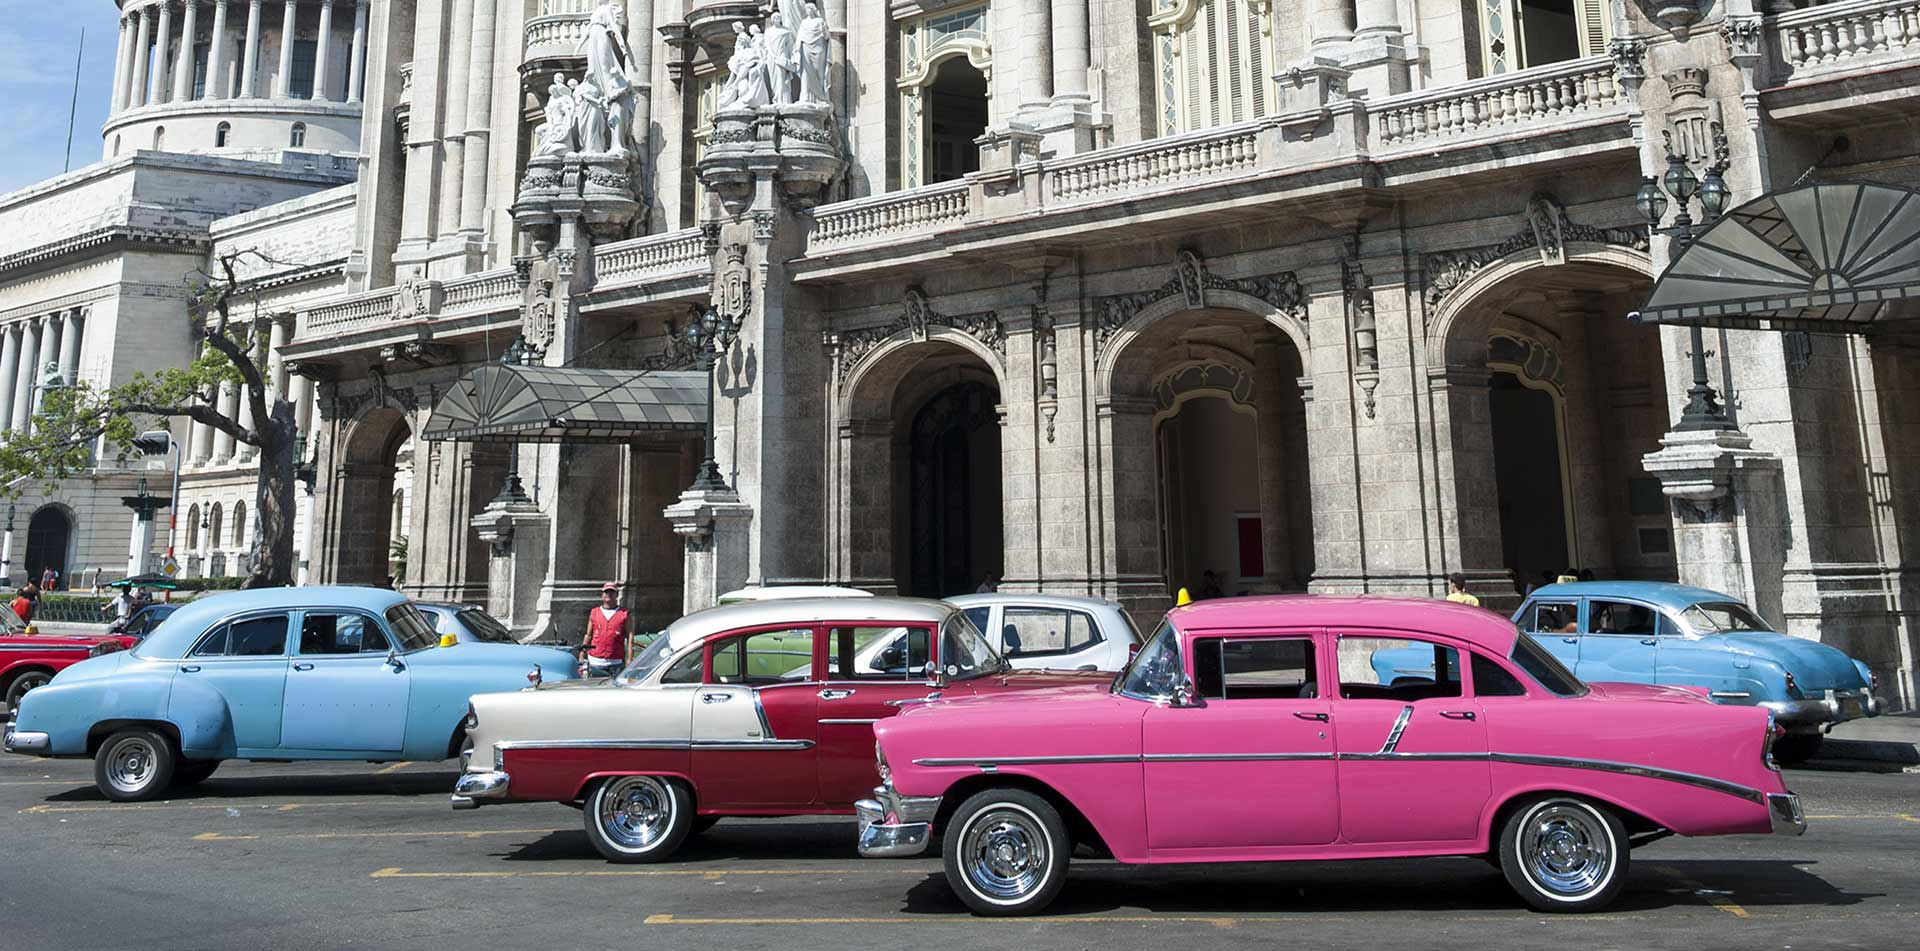 North America Caribbean Cuba Havana classic cars Chevrolet Ford Cadillac Dodge Buick Chrysler - luxury vacation destinations